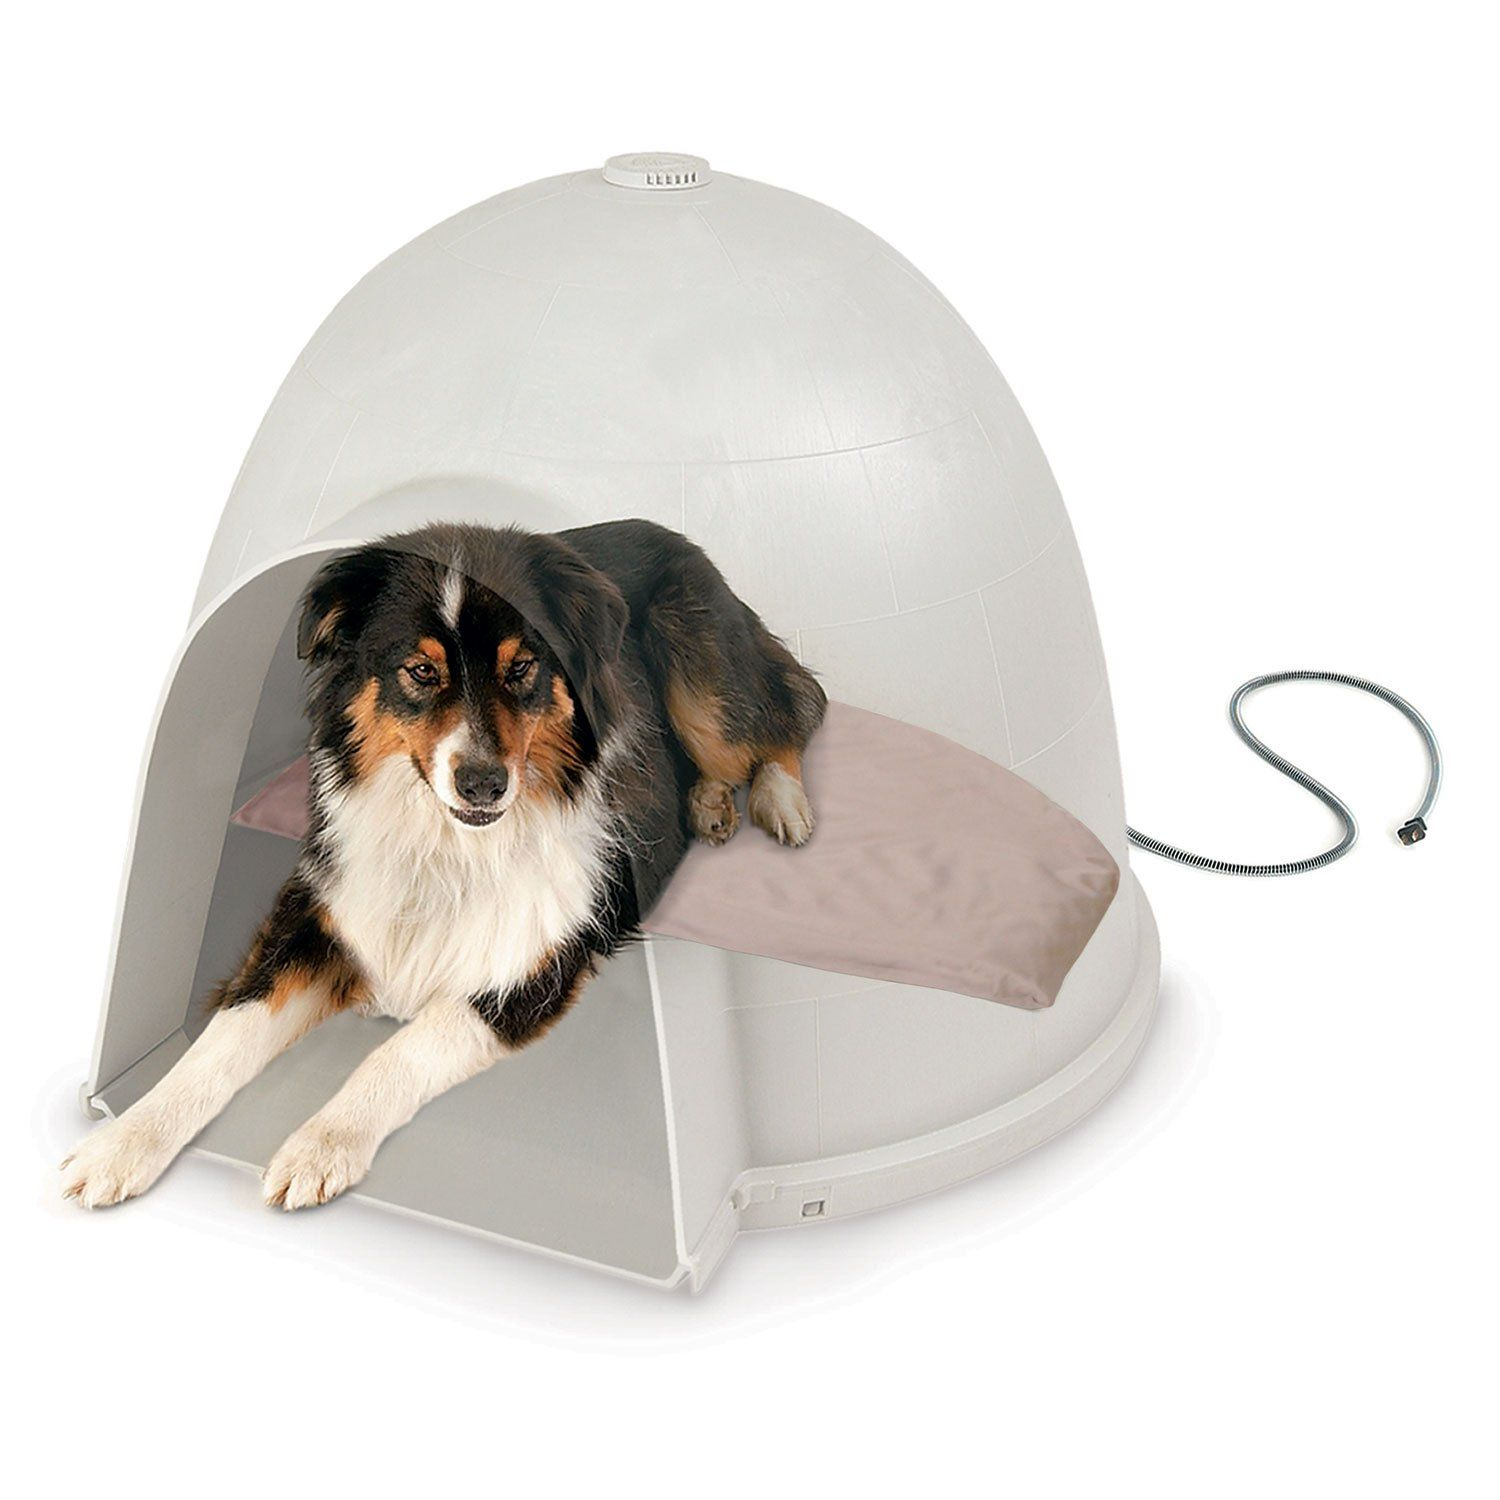 K H Lectro Soft Igloo Style Heated Dog Bed 14 5 L X 24 W